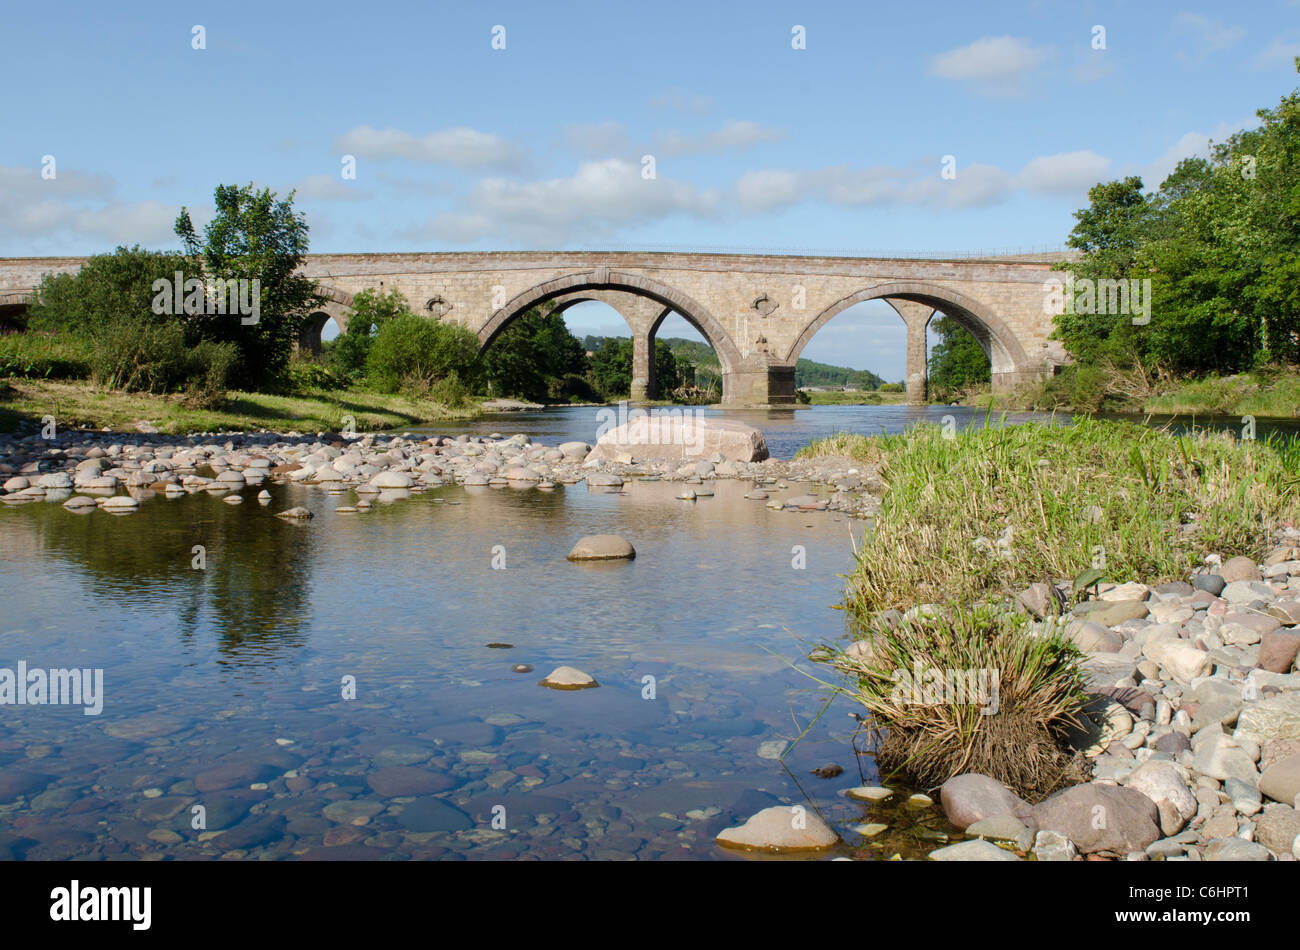 Railway viaduct and road bridge across North River Esk still water at St Cyrus National Nature Reserve - Kincardineshire - Stock Image